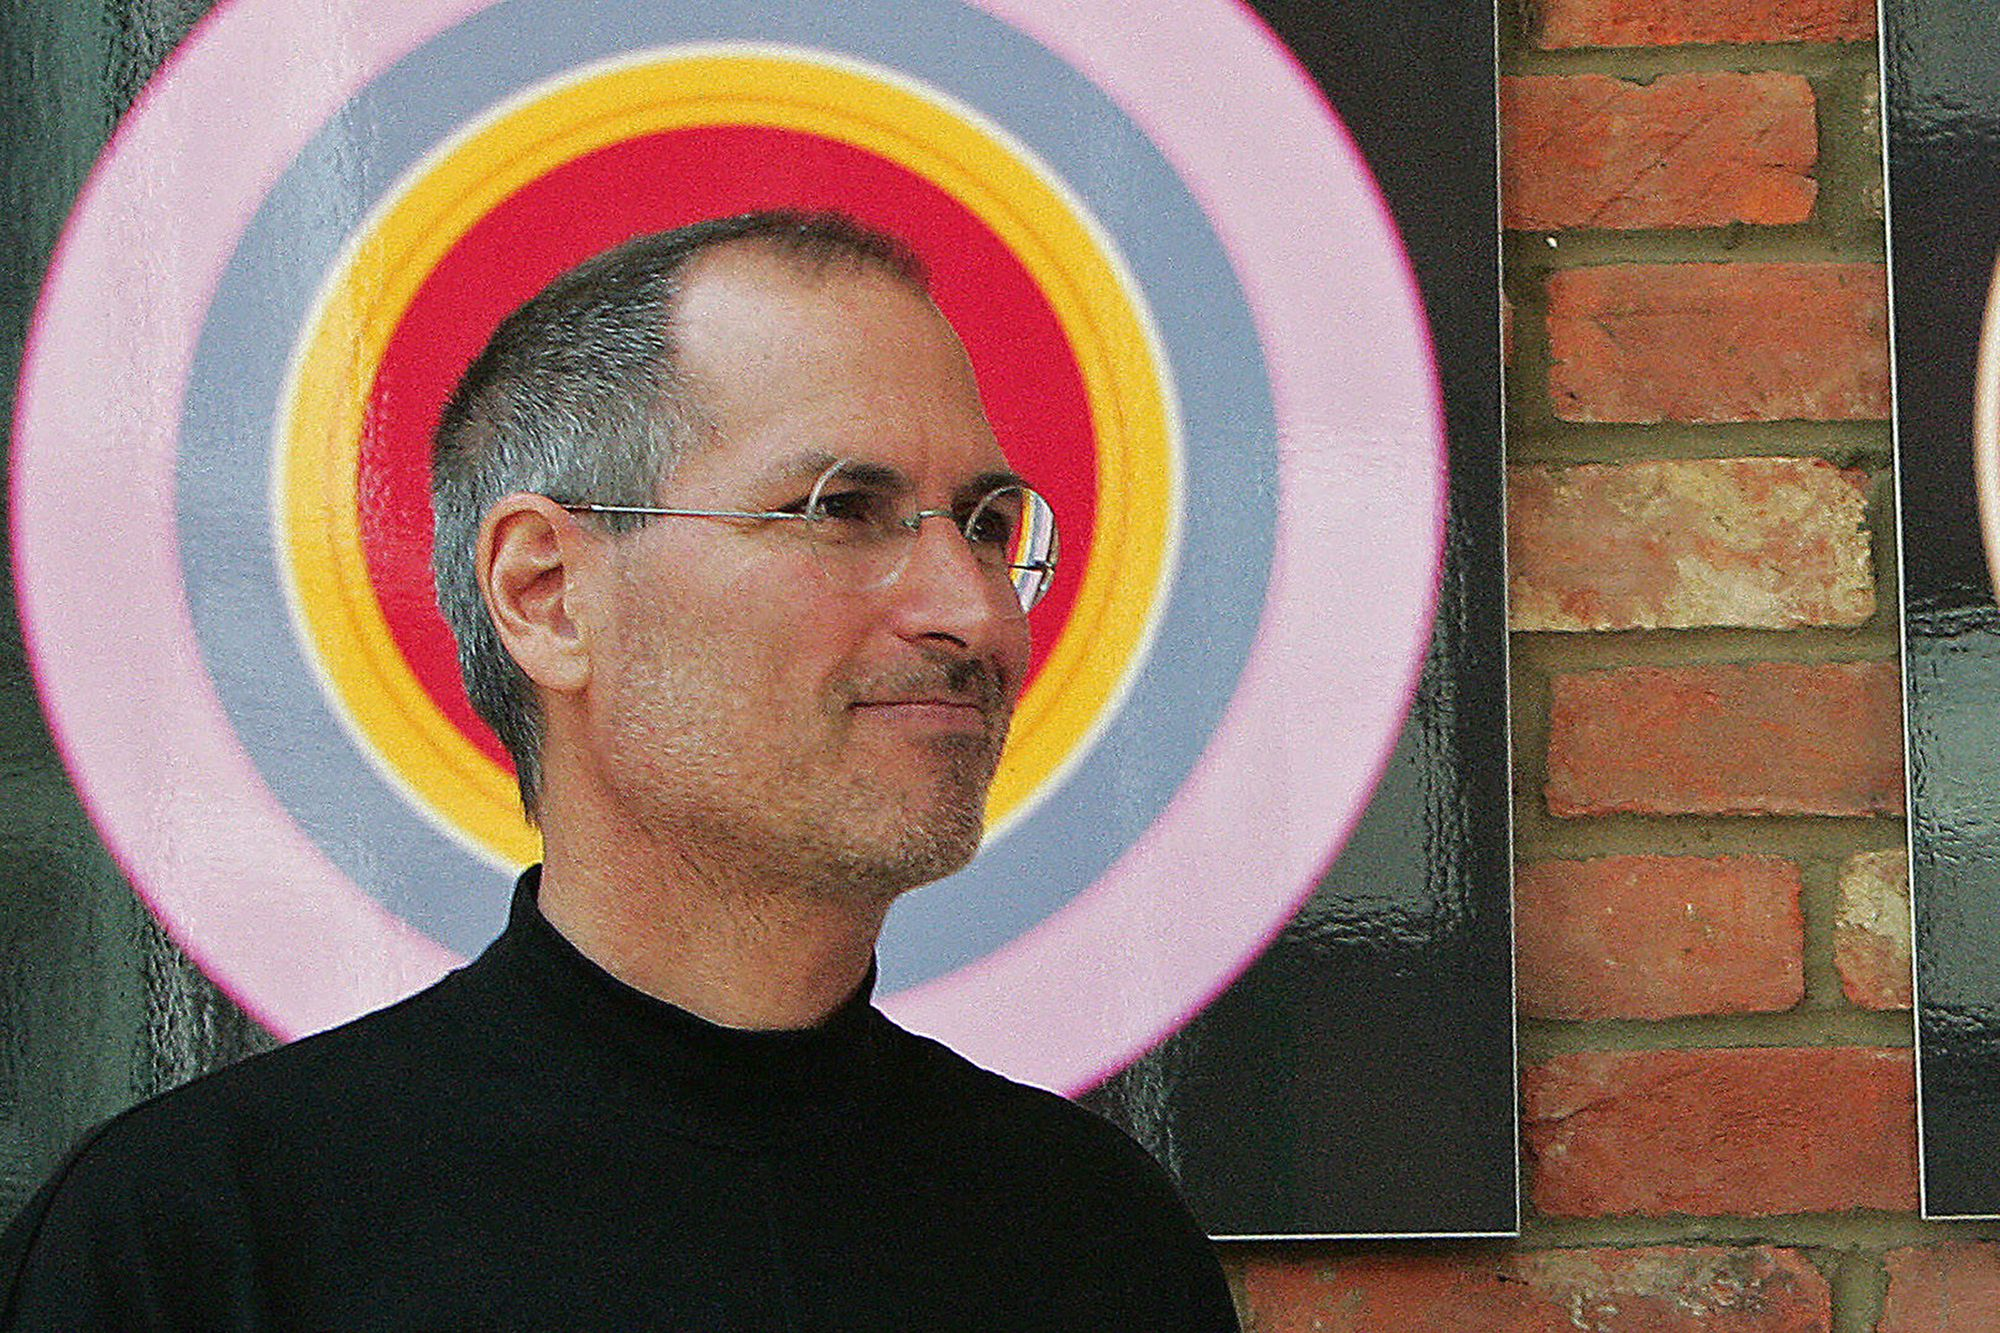 5-inspirational-tips-from-my-day-in-the-life-of-steve-jobs